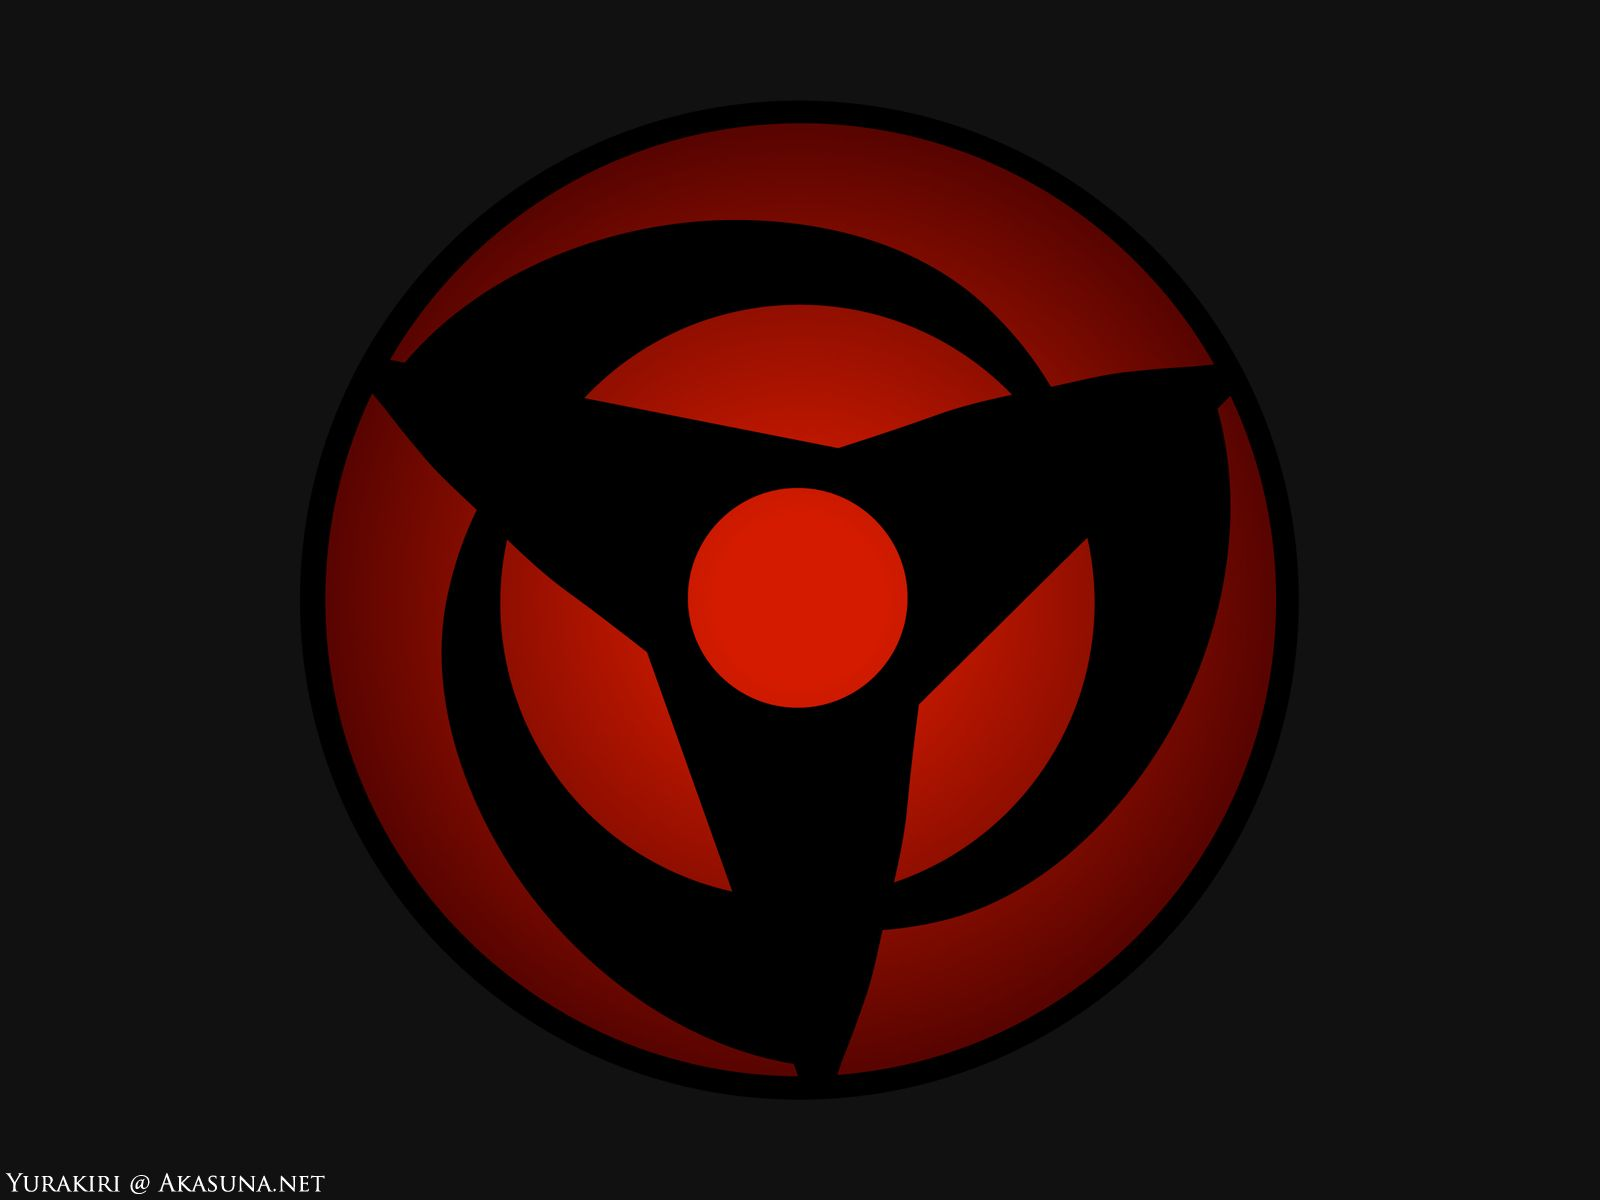 Mangekyou Sharingan Kakashi Mangekyou Sharingan Sharingan Wallpapers Best Naruto Wallpapers